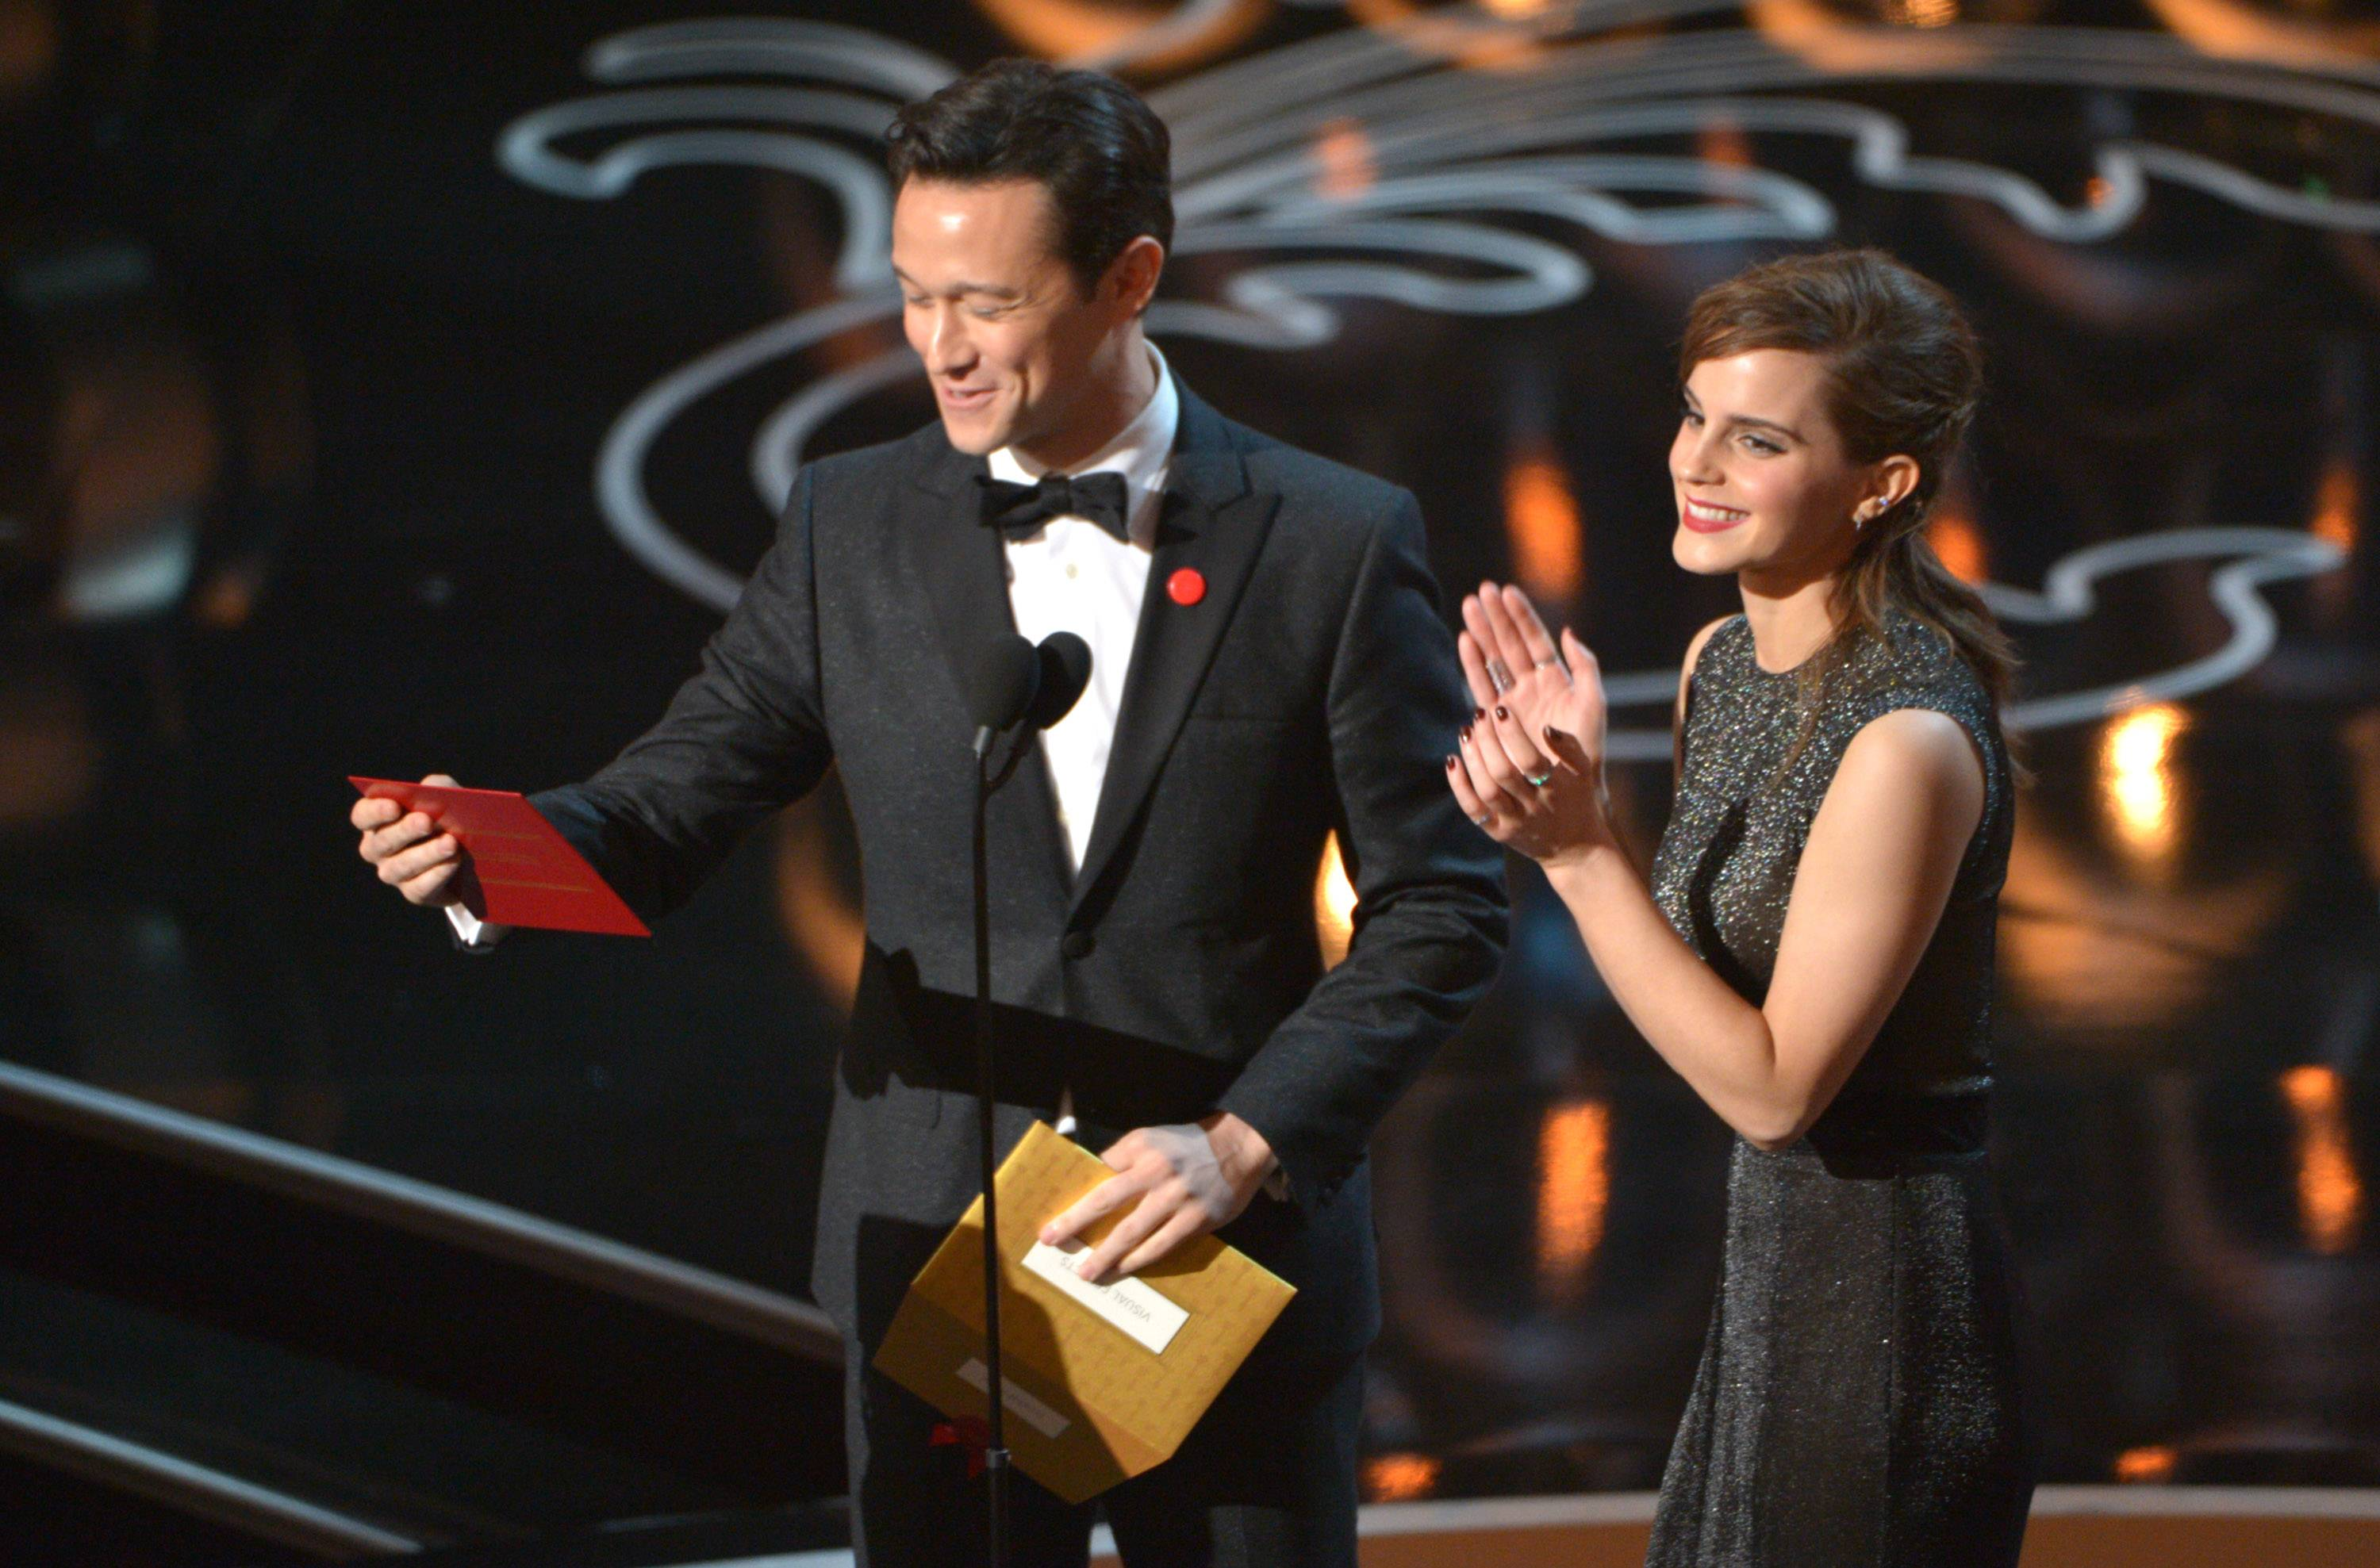 Joseph Gordon-Levitt, left, and Emma Watson present an award during the Oscars.